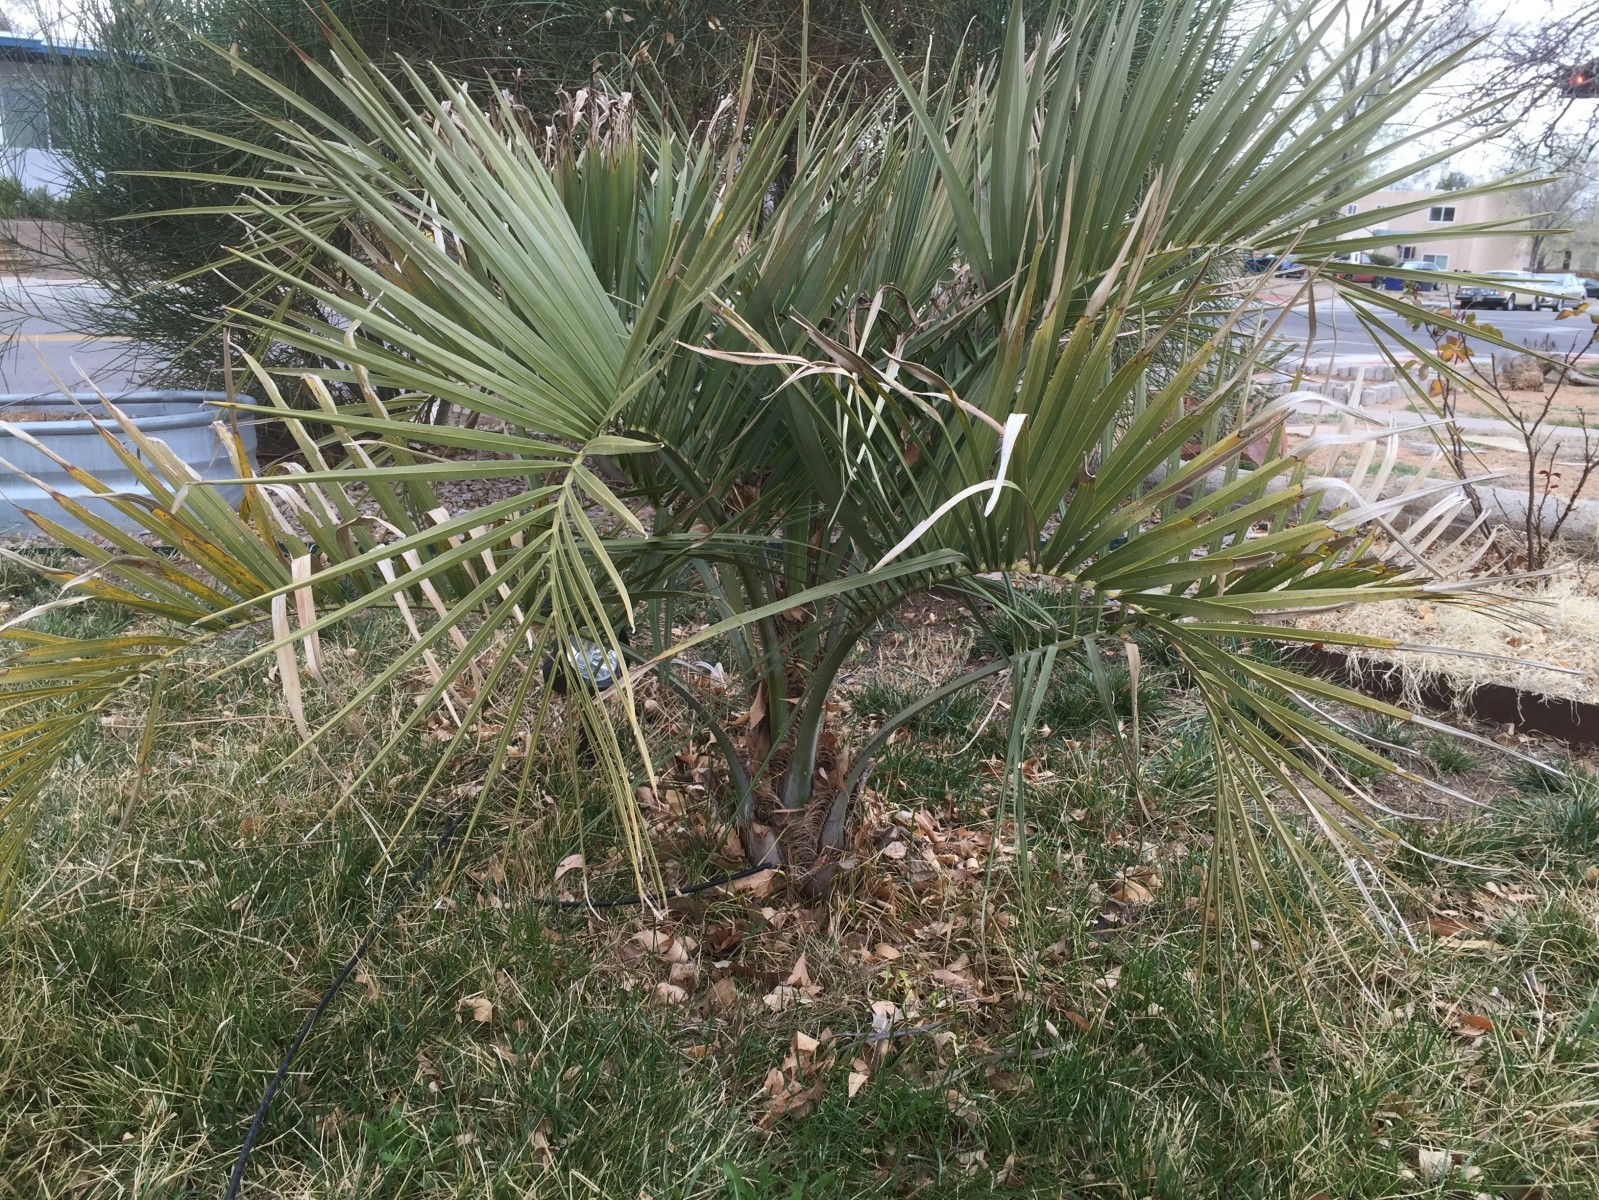 Butia C. with very little damage from winter 2/15/15